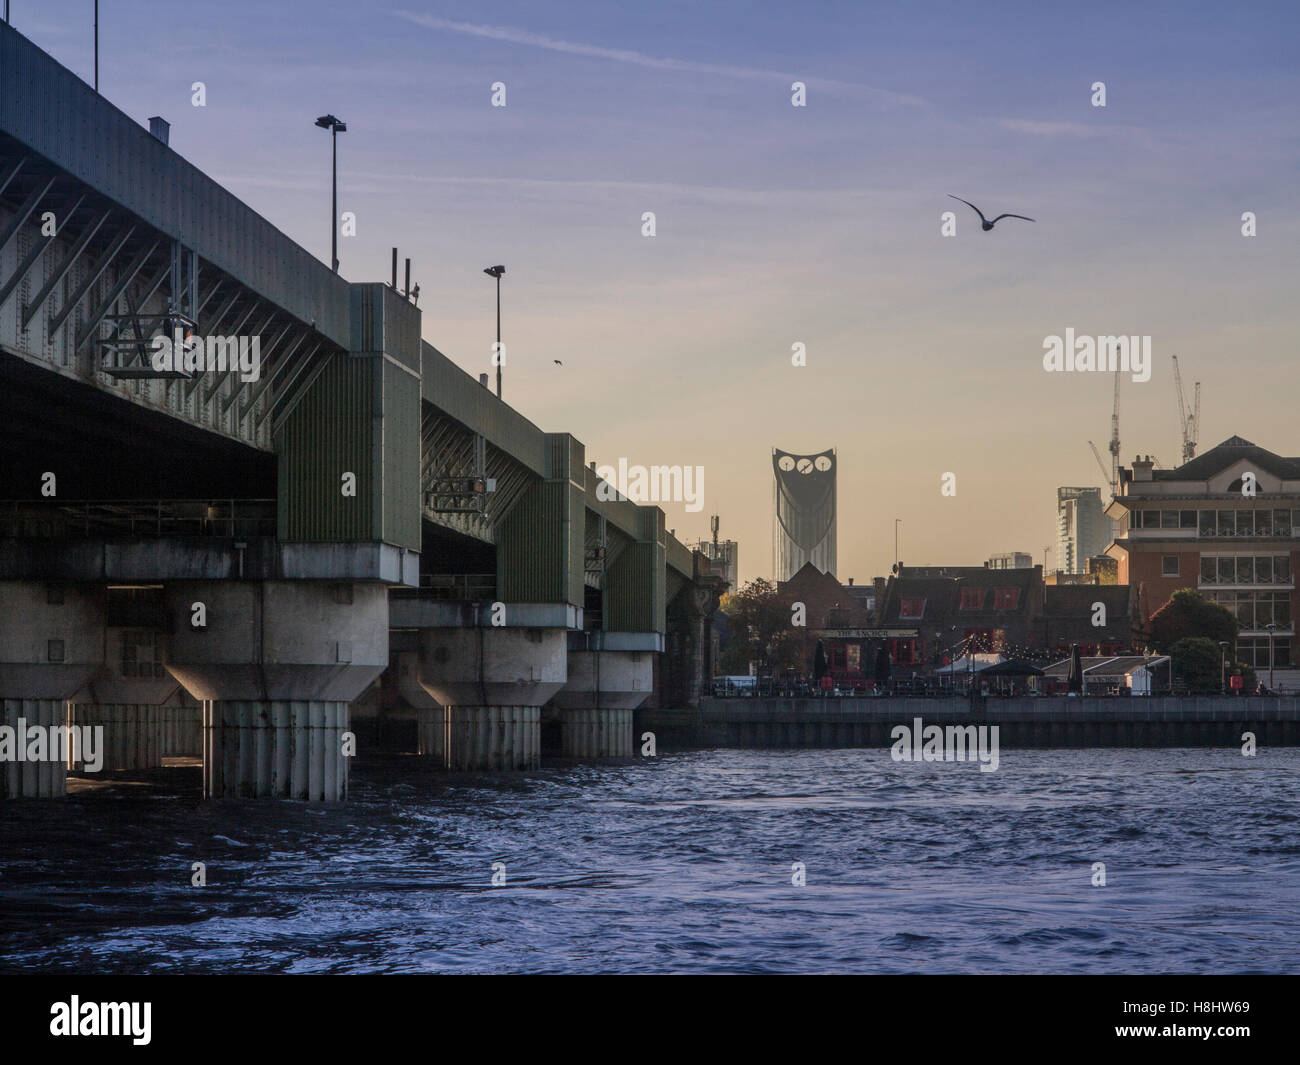 London: Cannon Street Railway Bridge and the Strata building - Stock Image